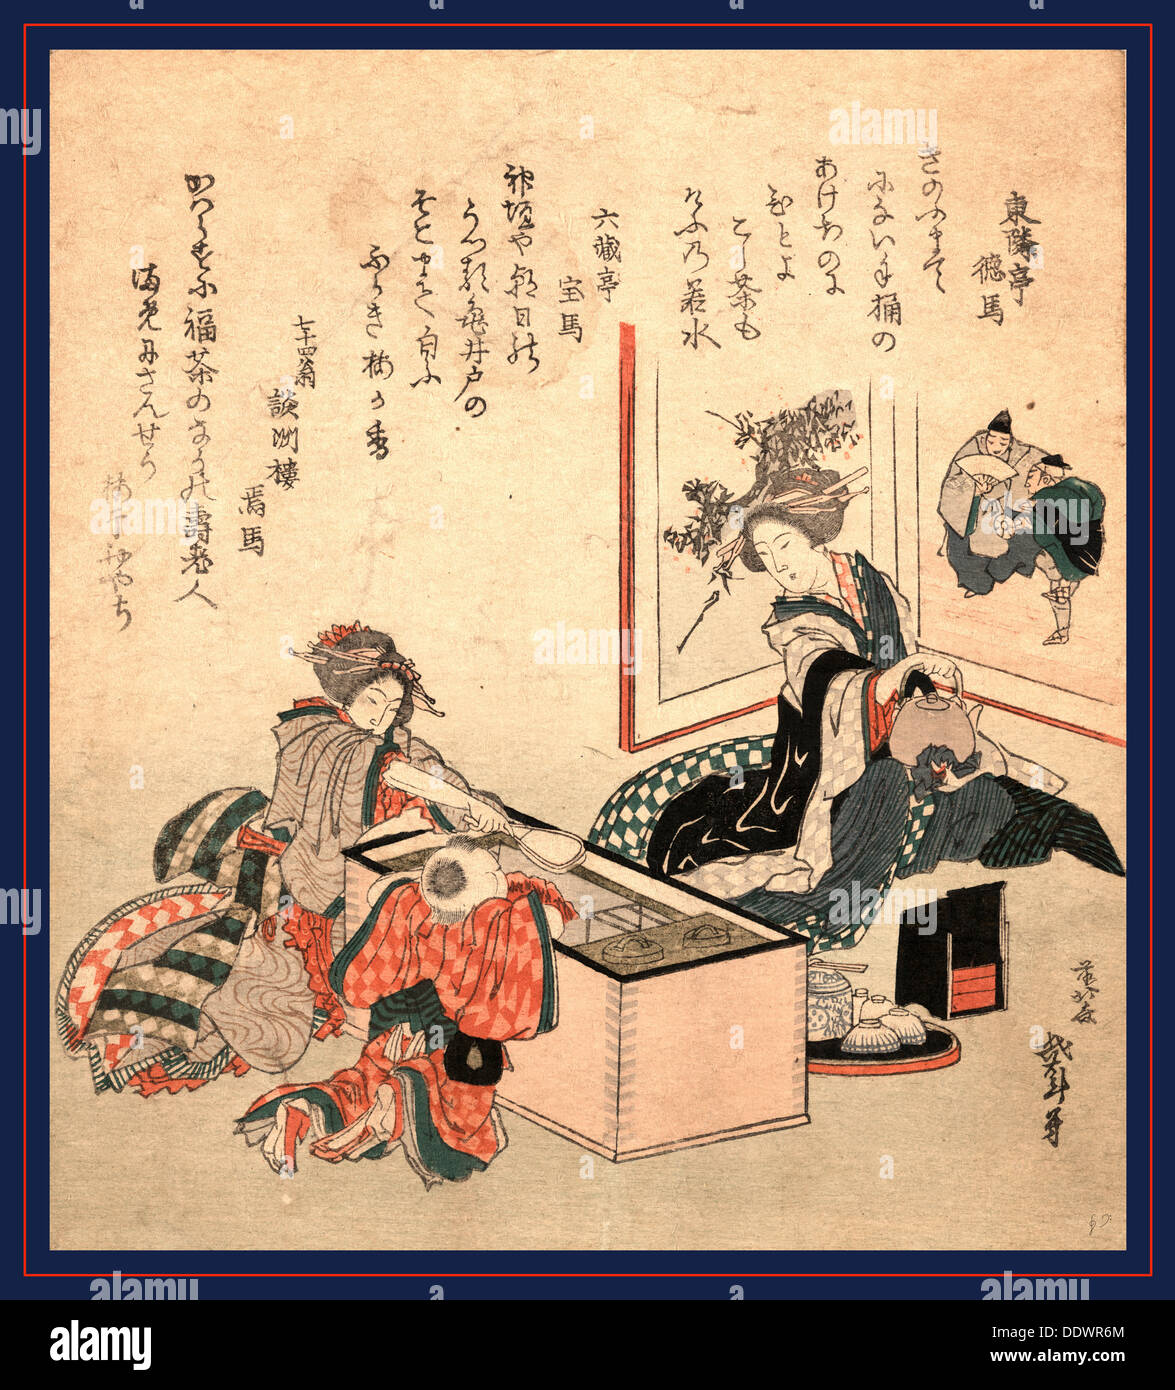 Wakamizu no fukucha, The first tea of the year. 1816., 1 print : woodcut, color ; 20.7 x 18.8 cm., Print shows a tea party with - Stock Image